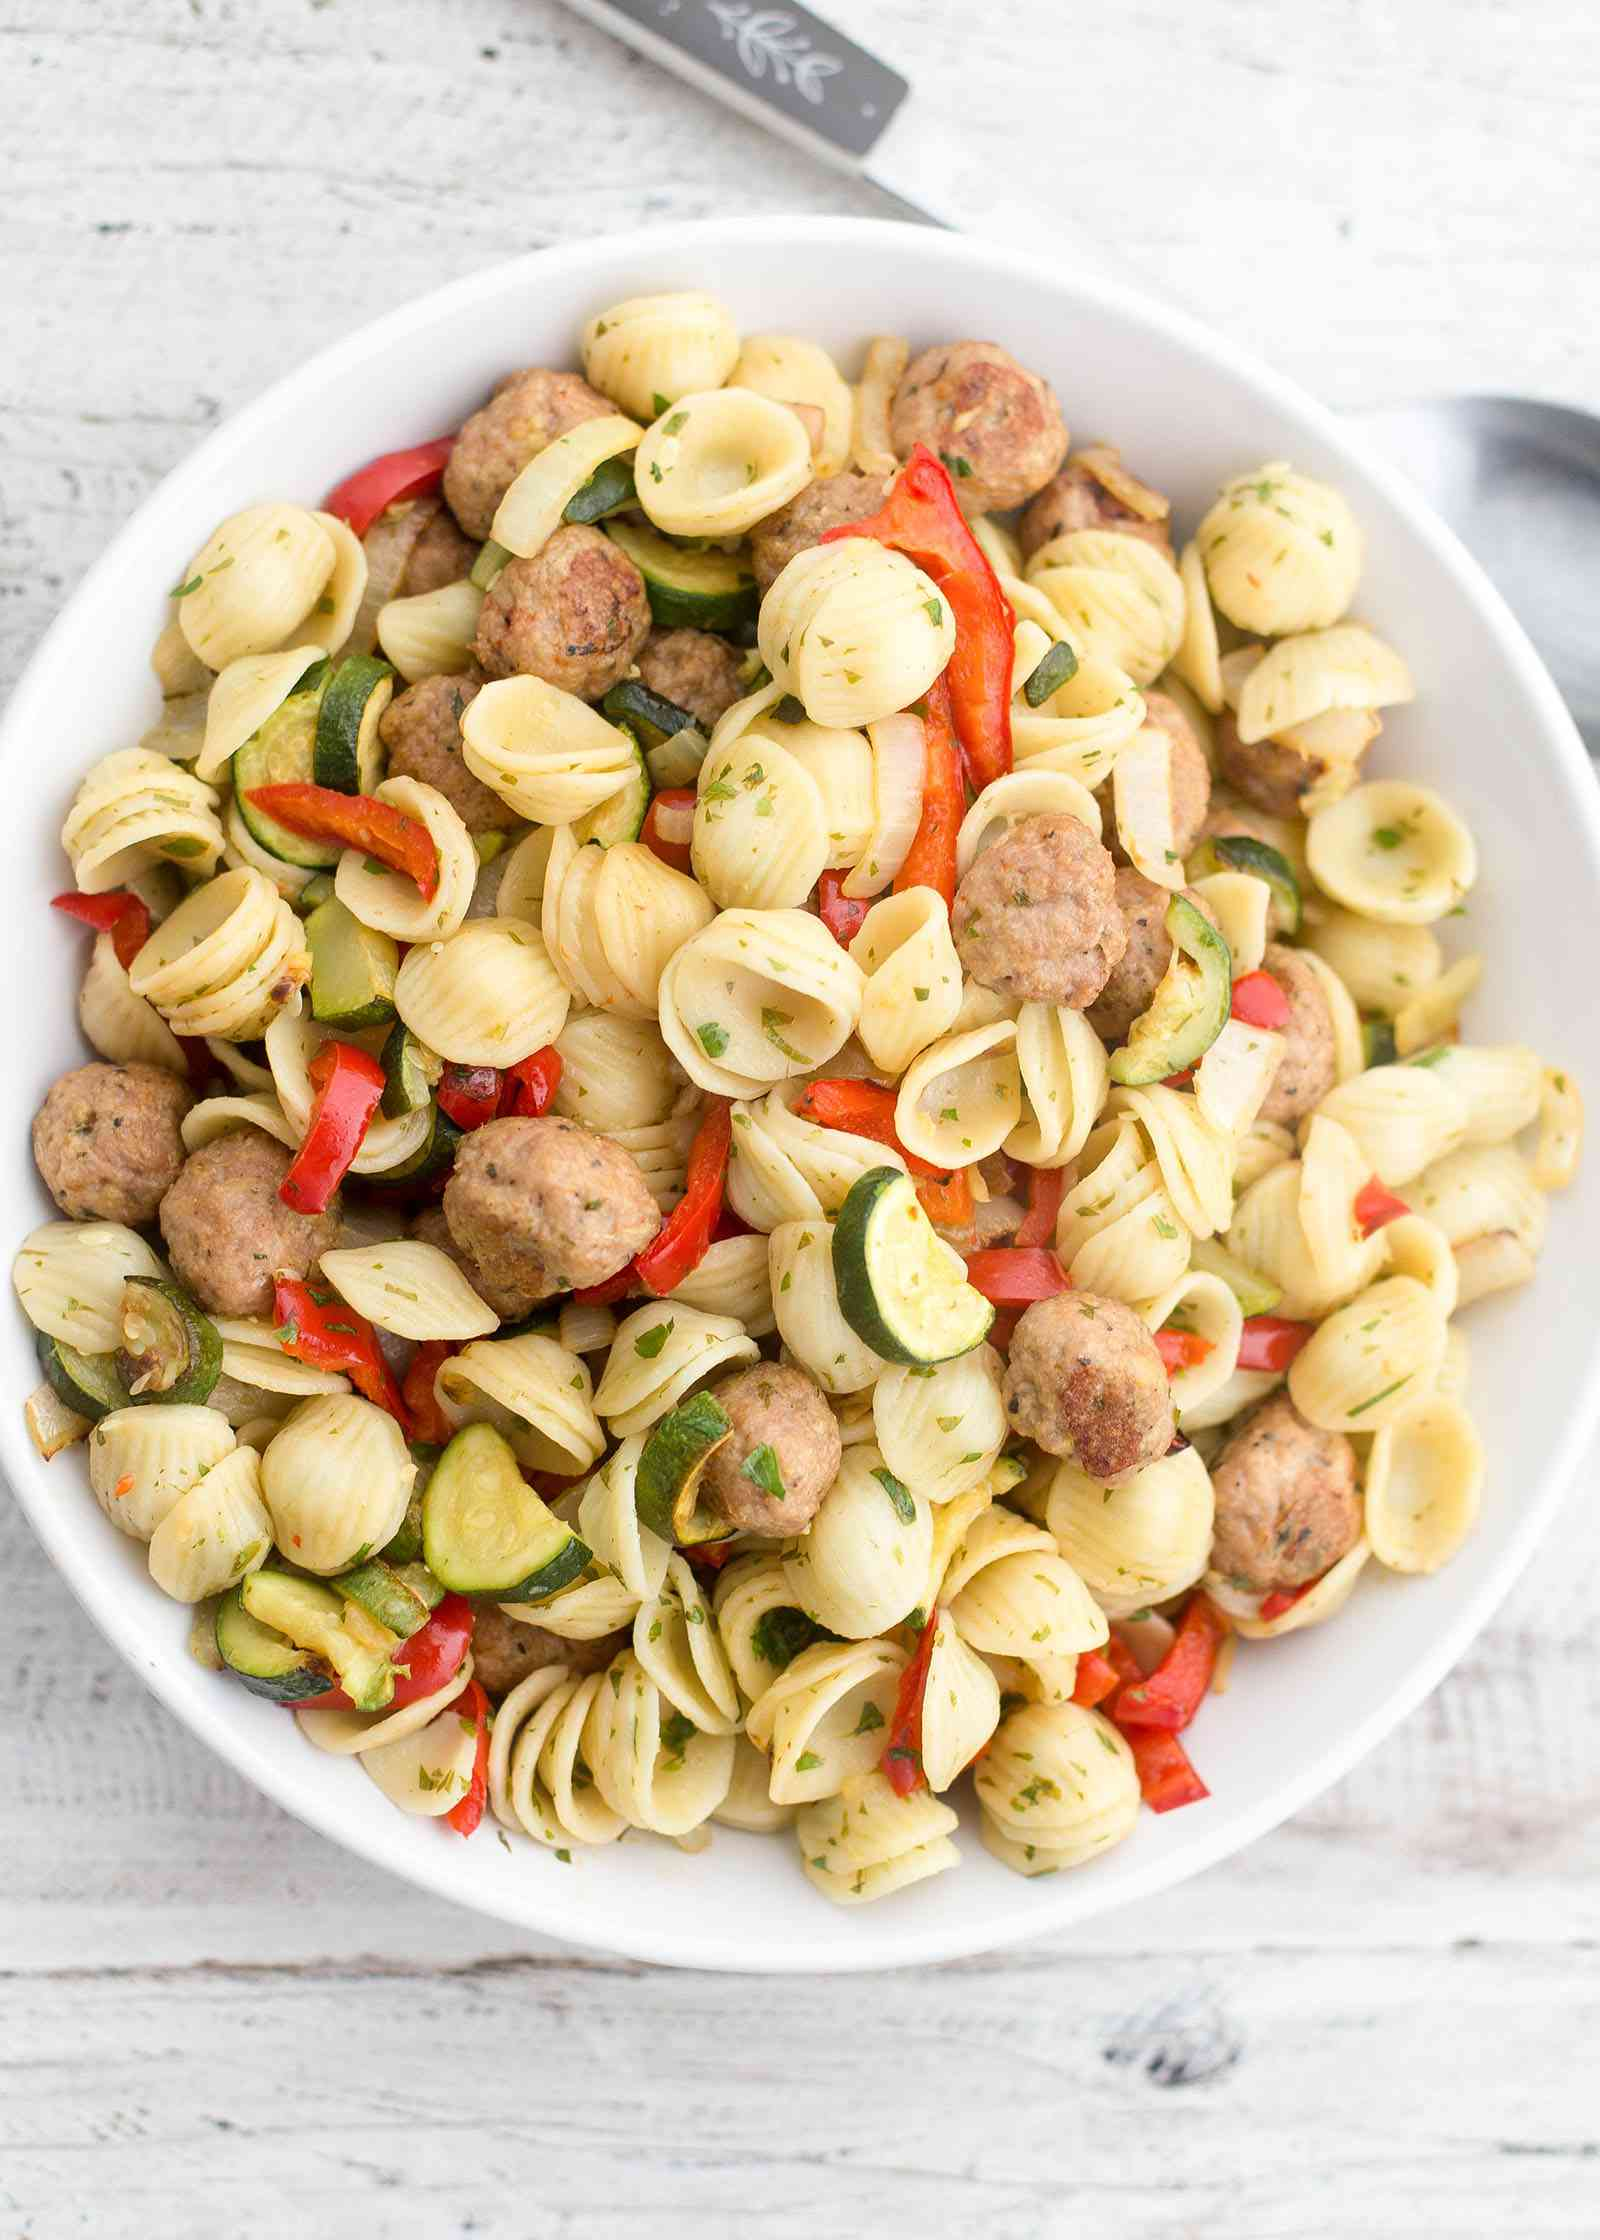 Pasta with Turkey Meatballs and Vegetables